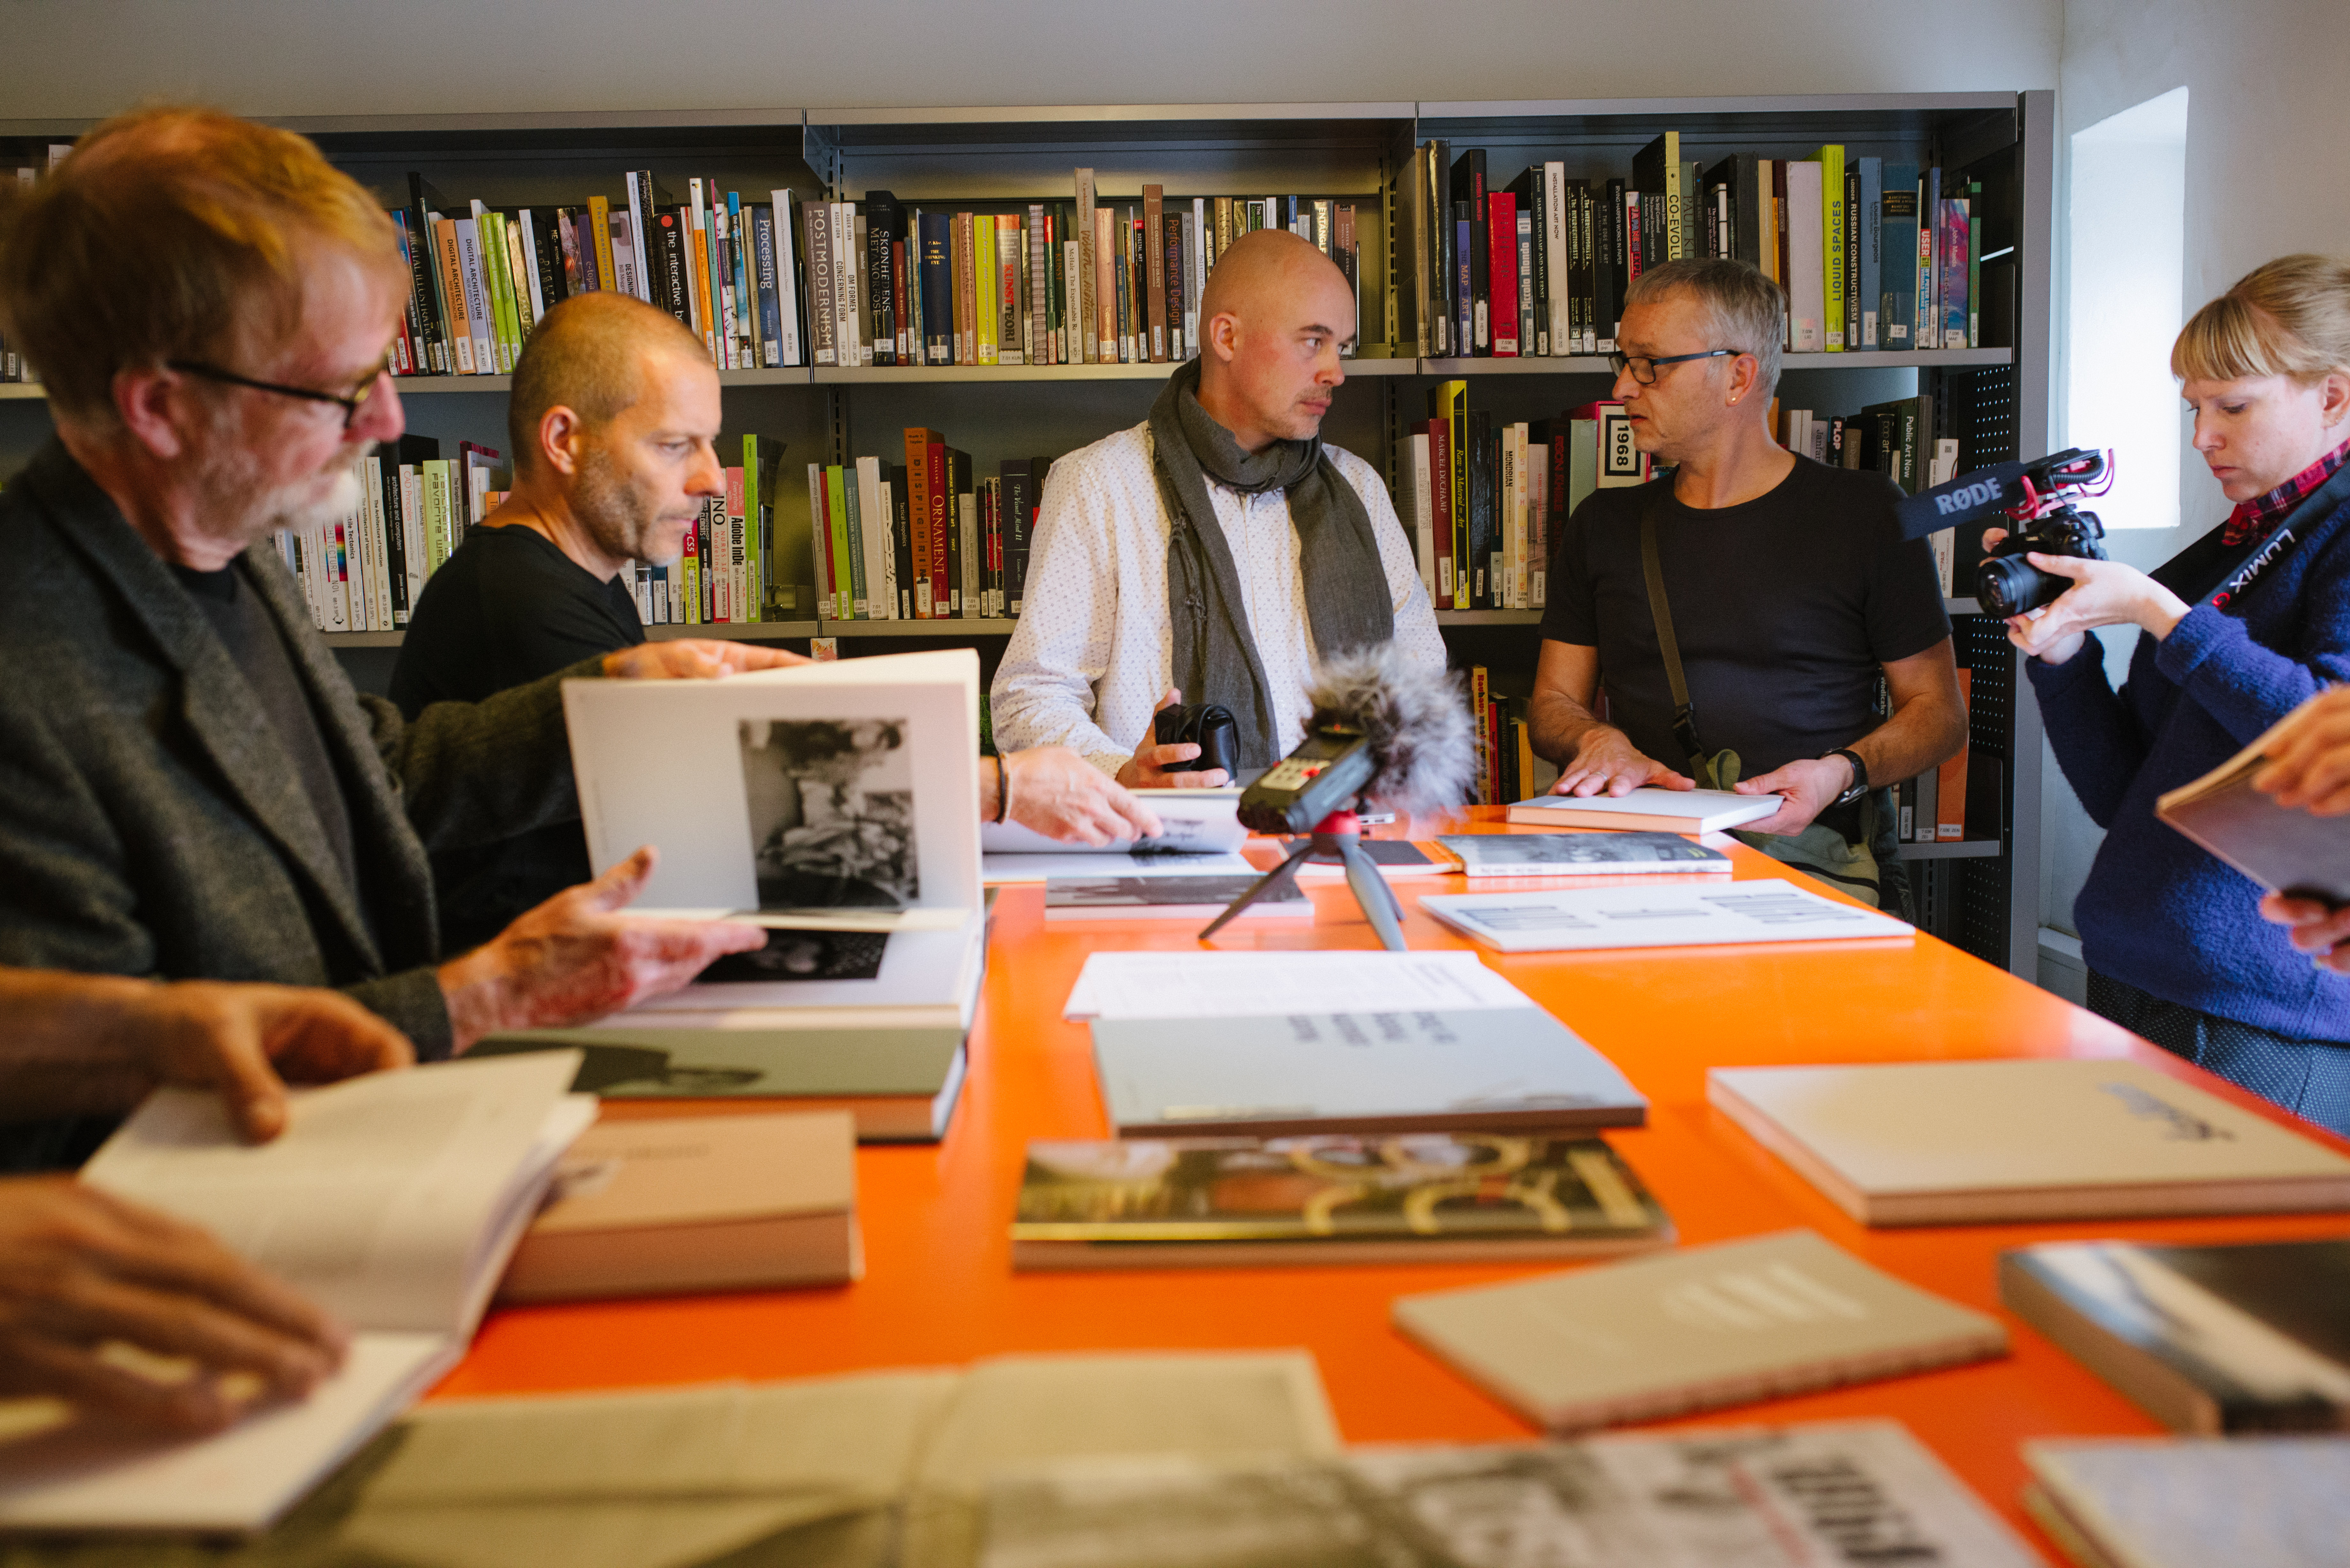 Gintaras Cesonis presents Lithuanian photobooks.